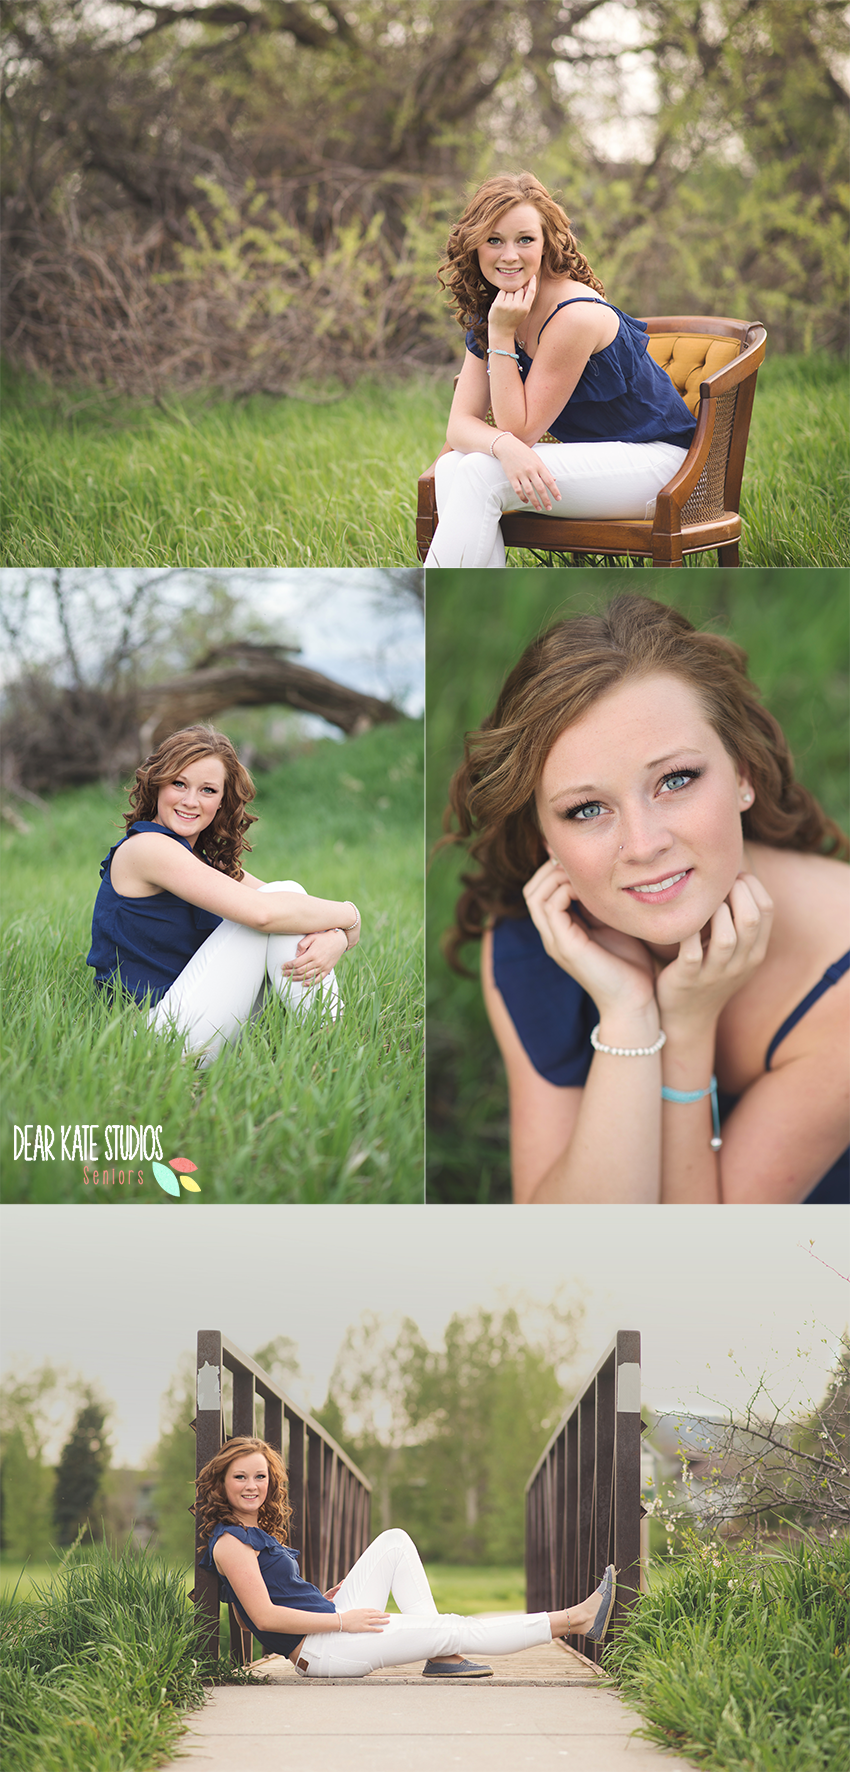 Senior photography loveland co thompson valley high school class of 2014